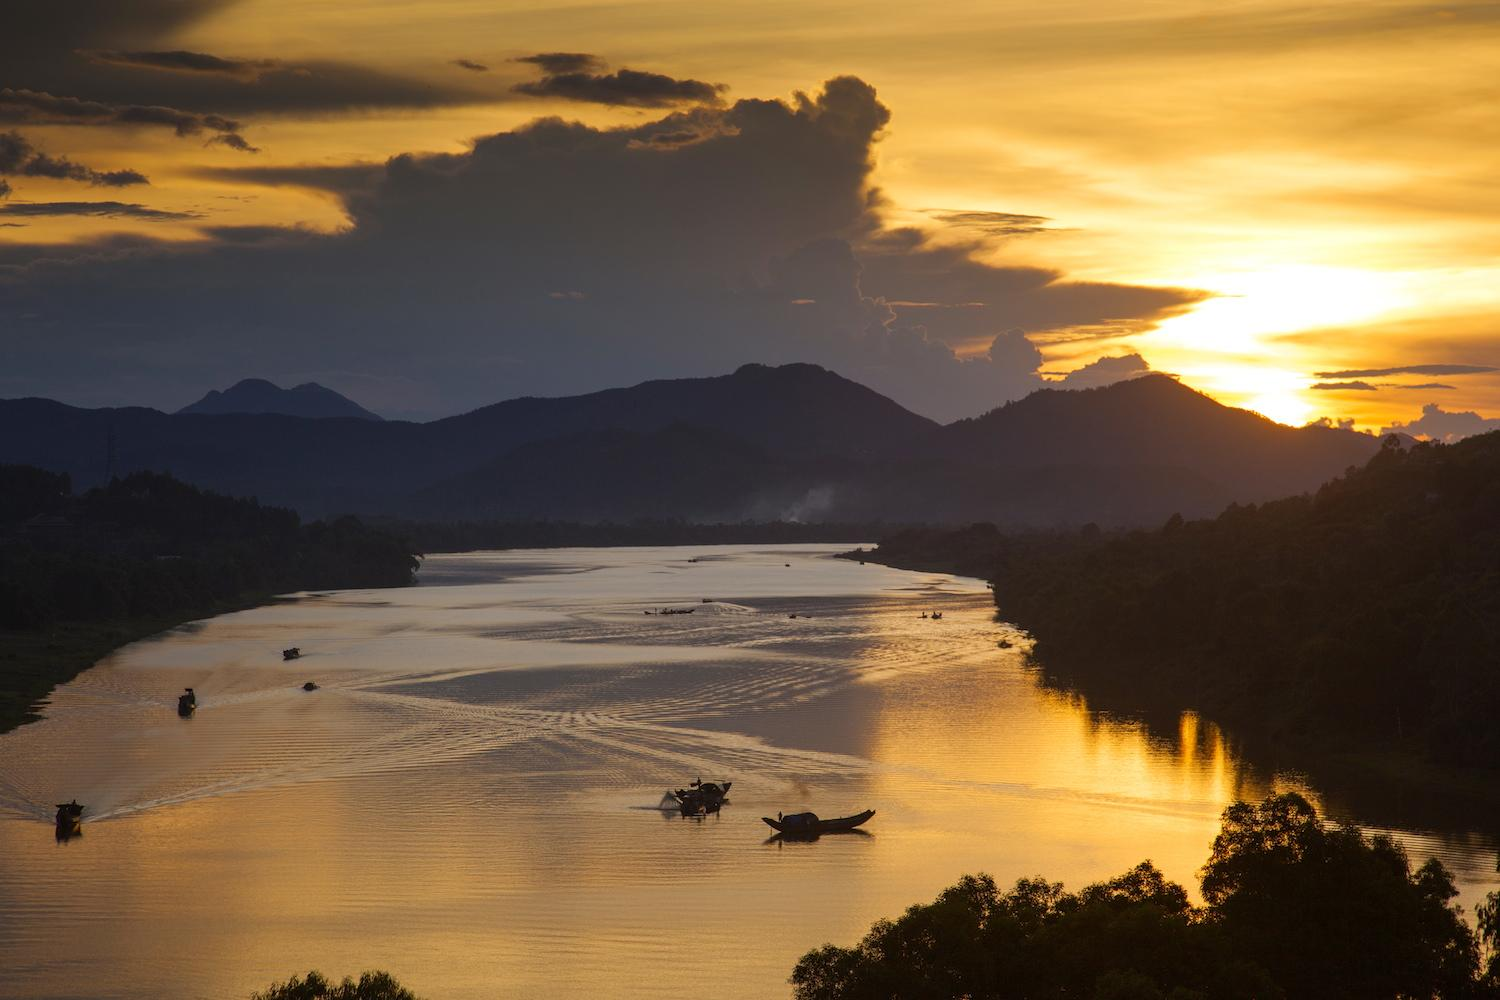 Easy bike tour of Northern Vietnam and Cambodia